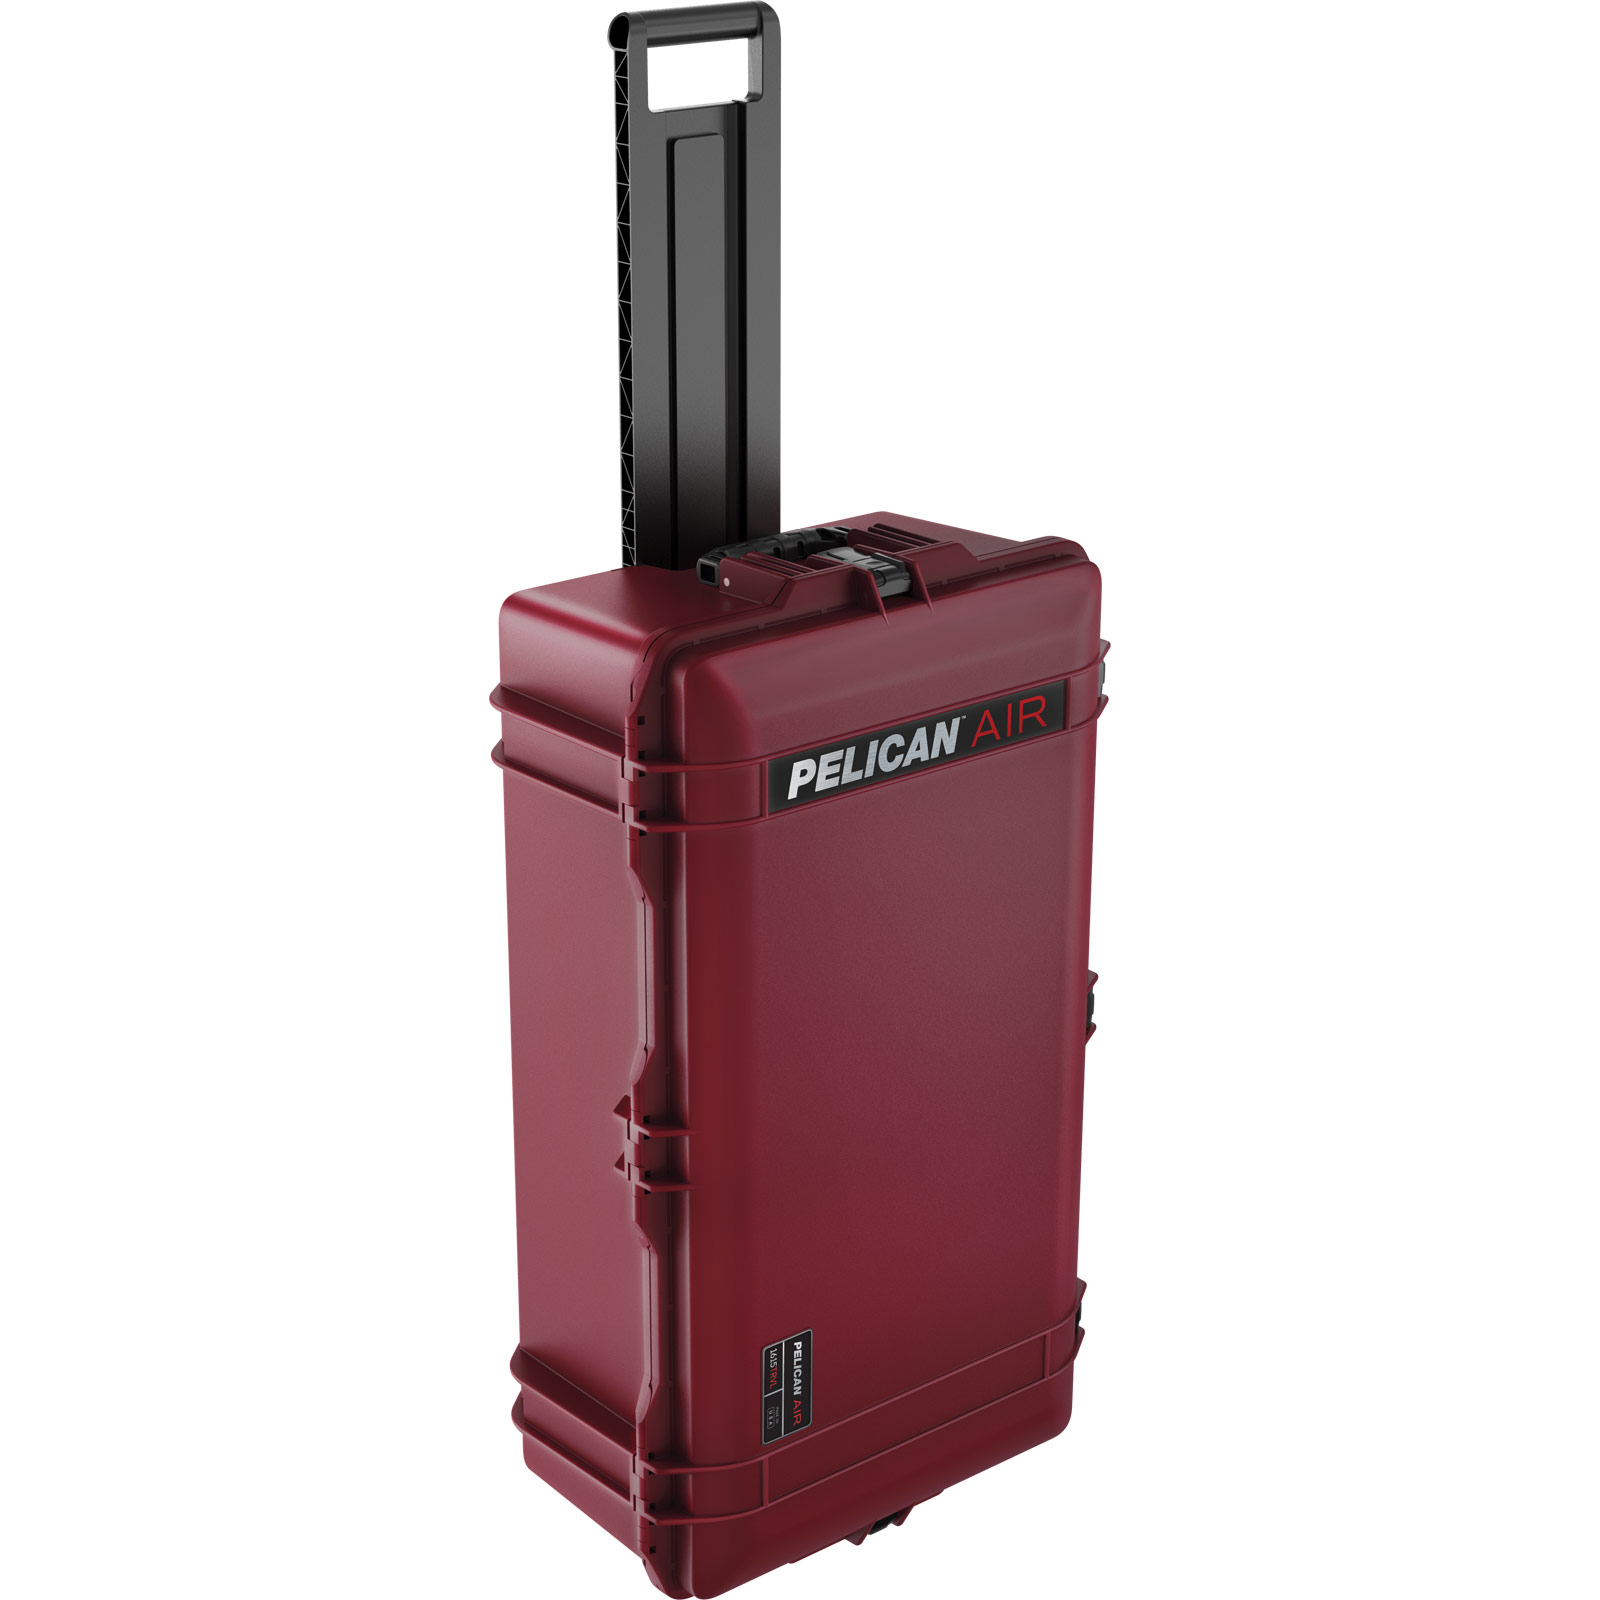 pelican 1615 air travel tsa oxblood case